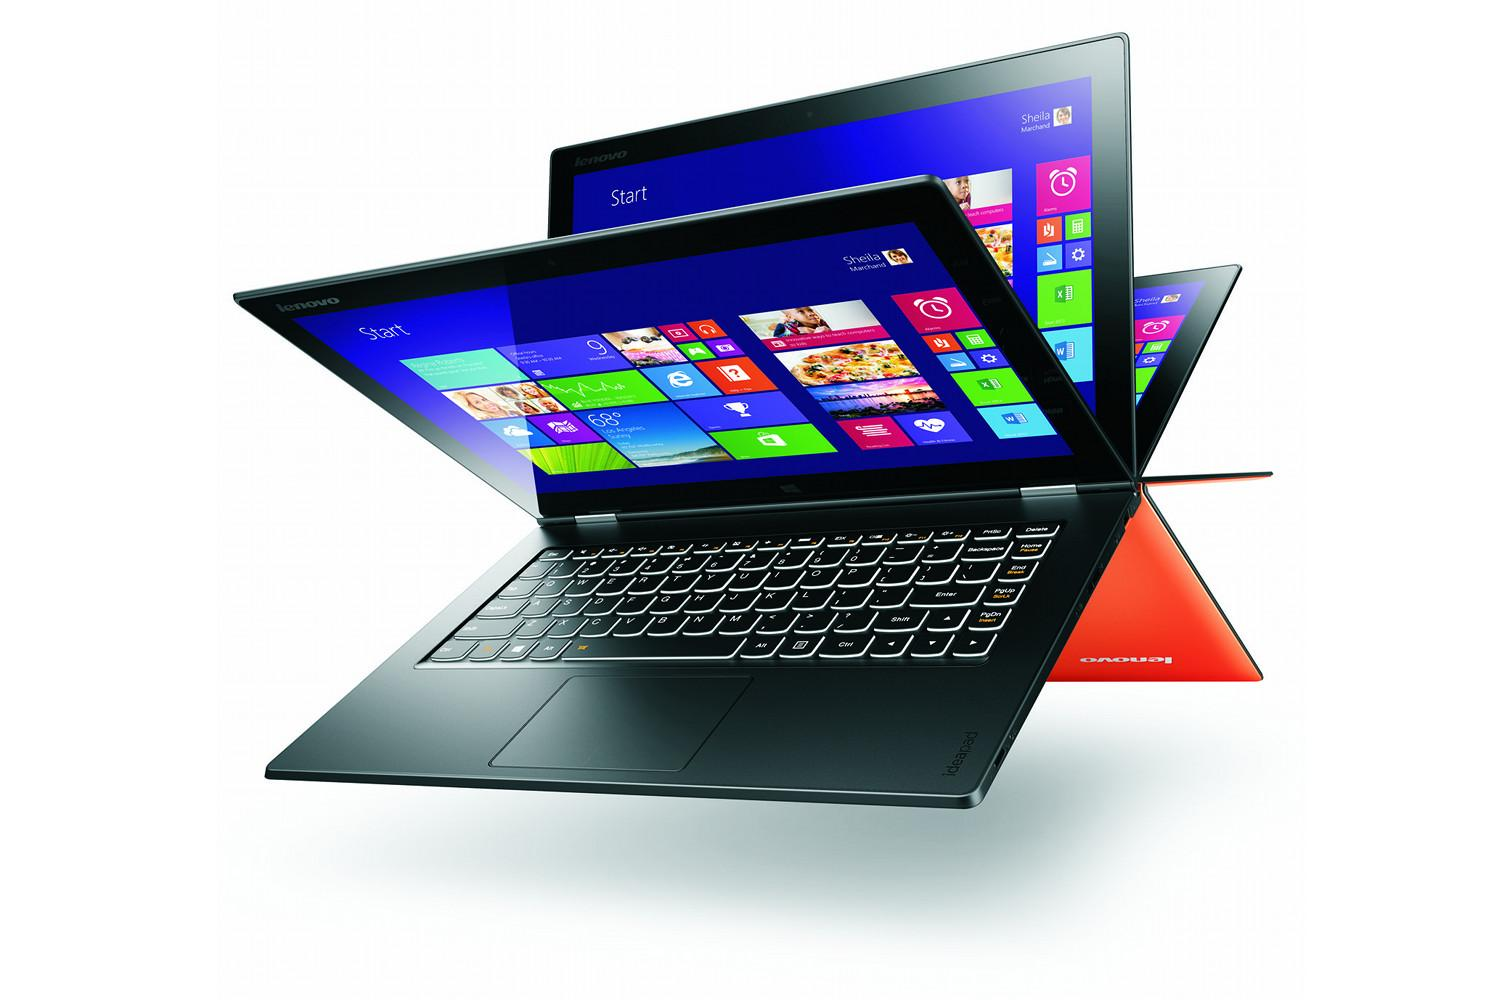 lenovo thinkpad yoga vs yoga pro 2 spec showdown digital trends. Black Bedroom Furniture Sets. Home Design Ideas